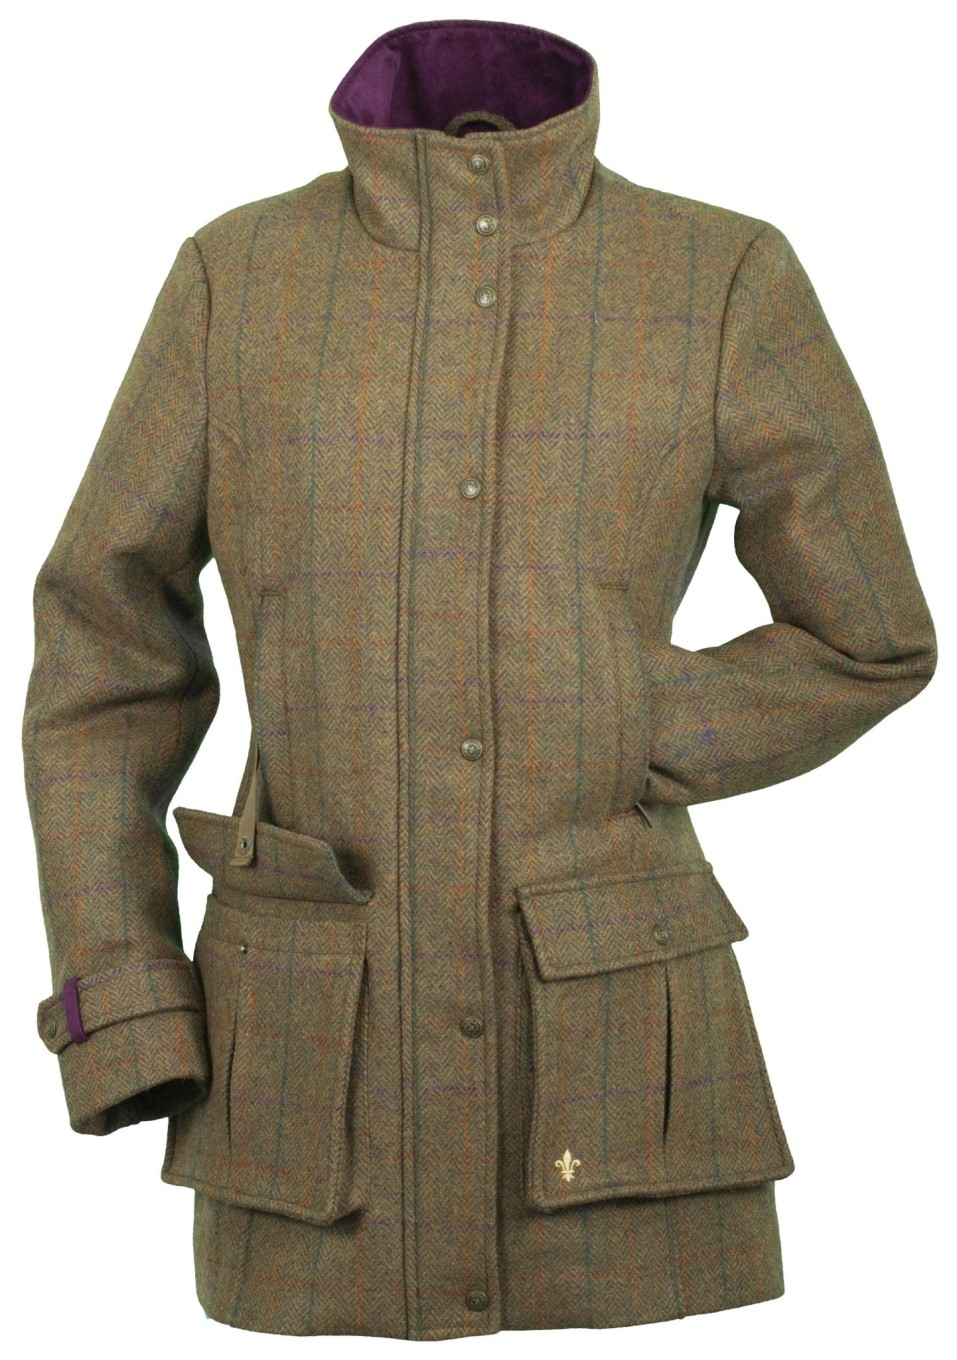 Product Description Fringe tweed jacket featuring two front pockets with decorative buttons.